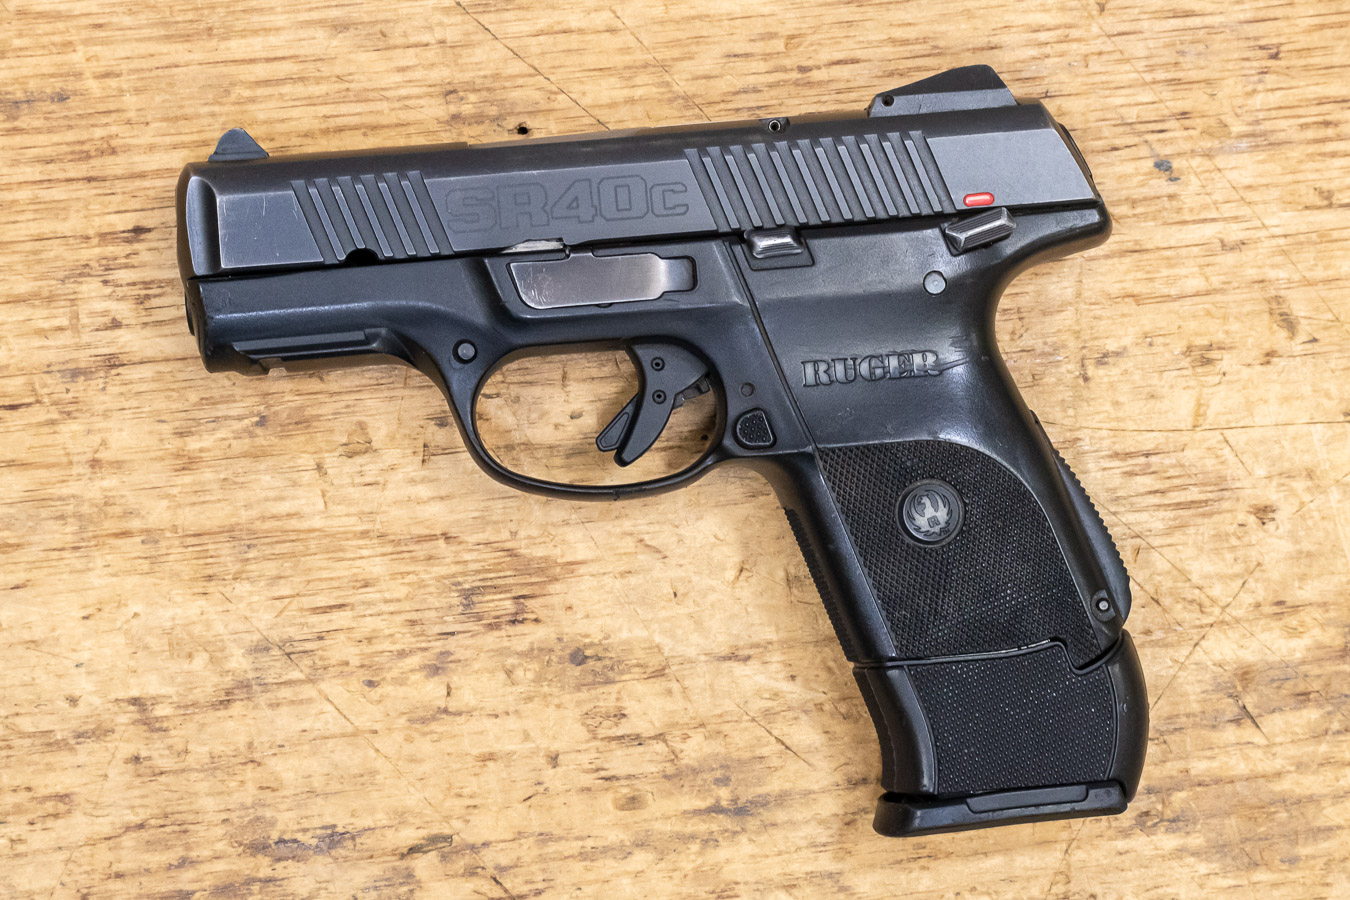 SR40C 40SW 15-ROUND USED TRADE-IN PISTOL